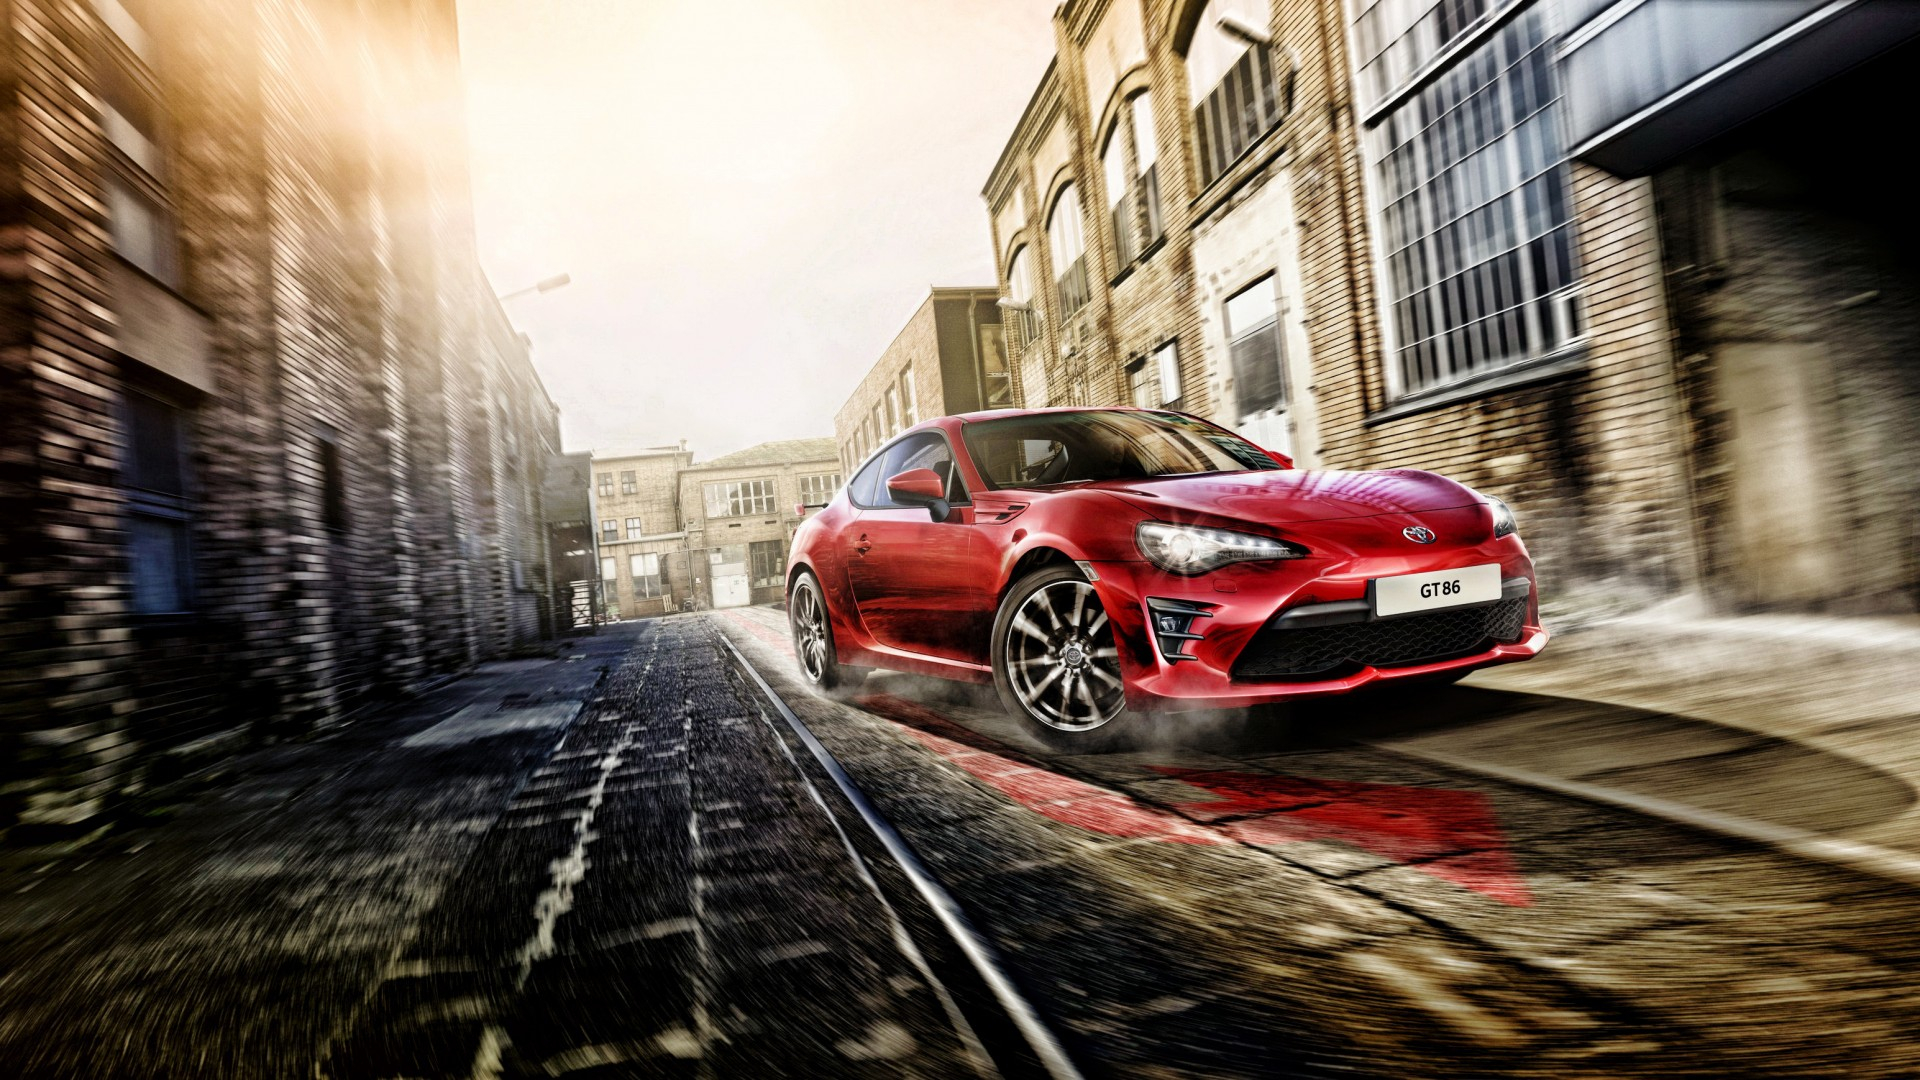 2017 toyota 86 sports car wallpapers